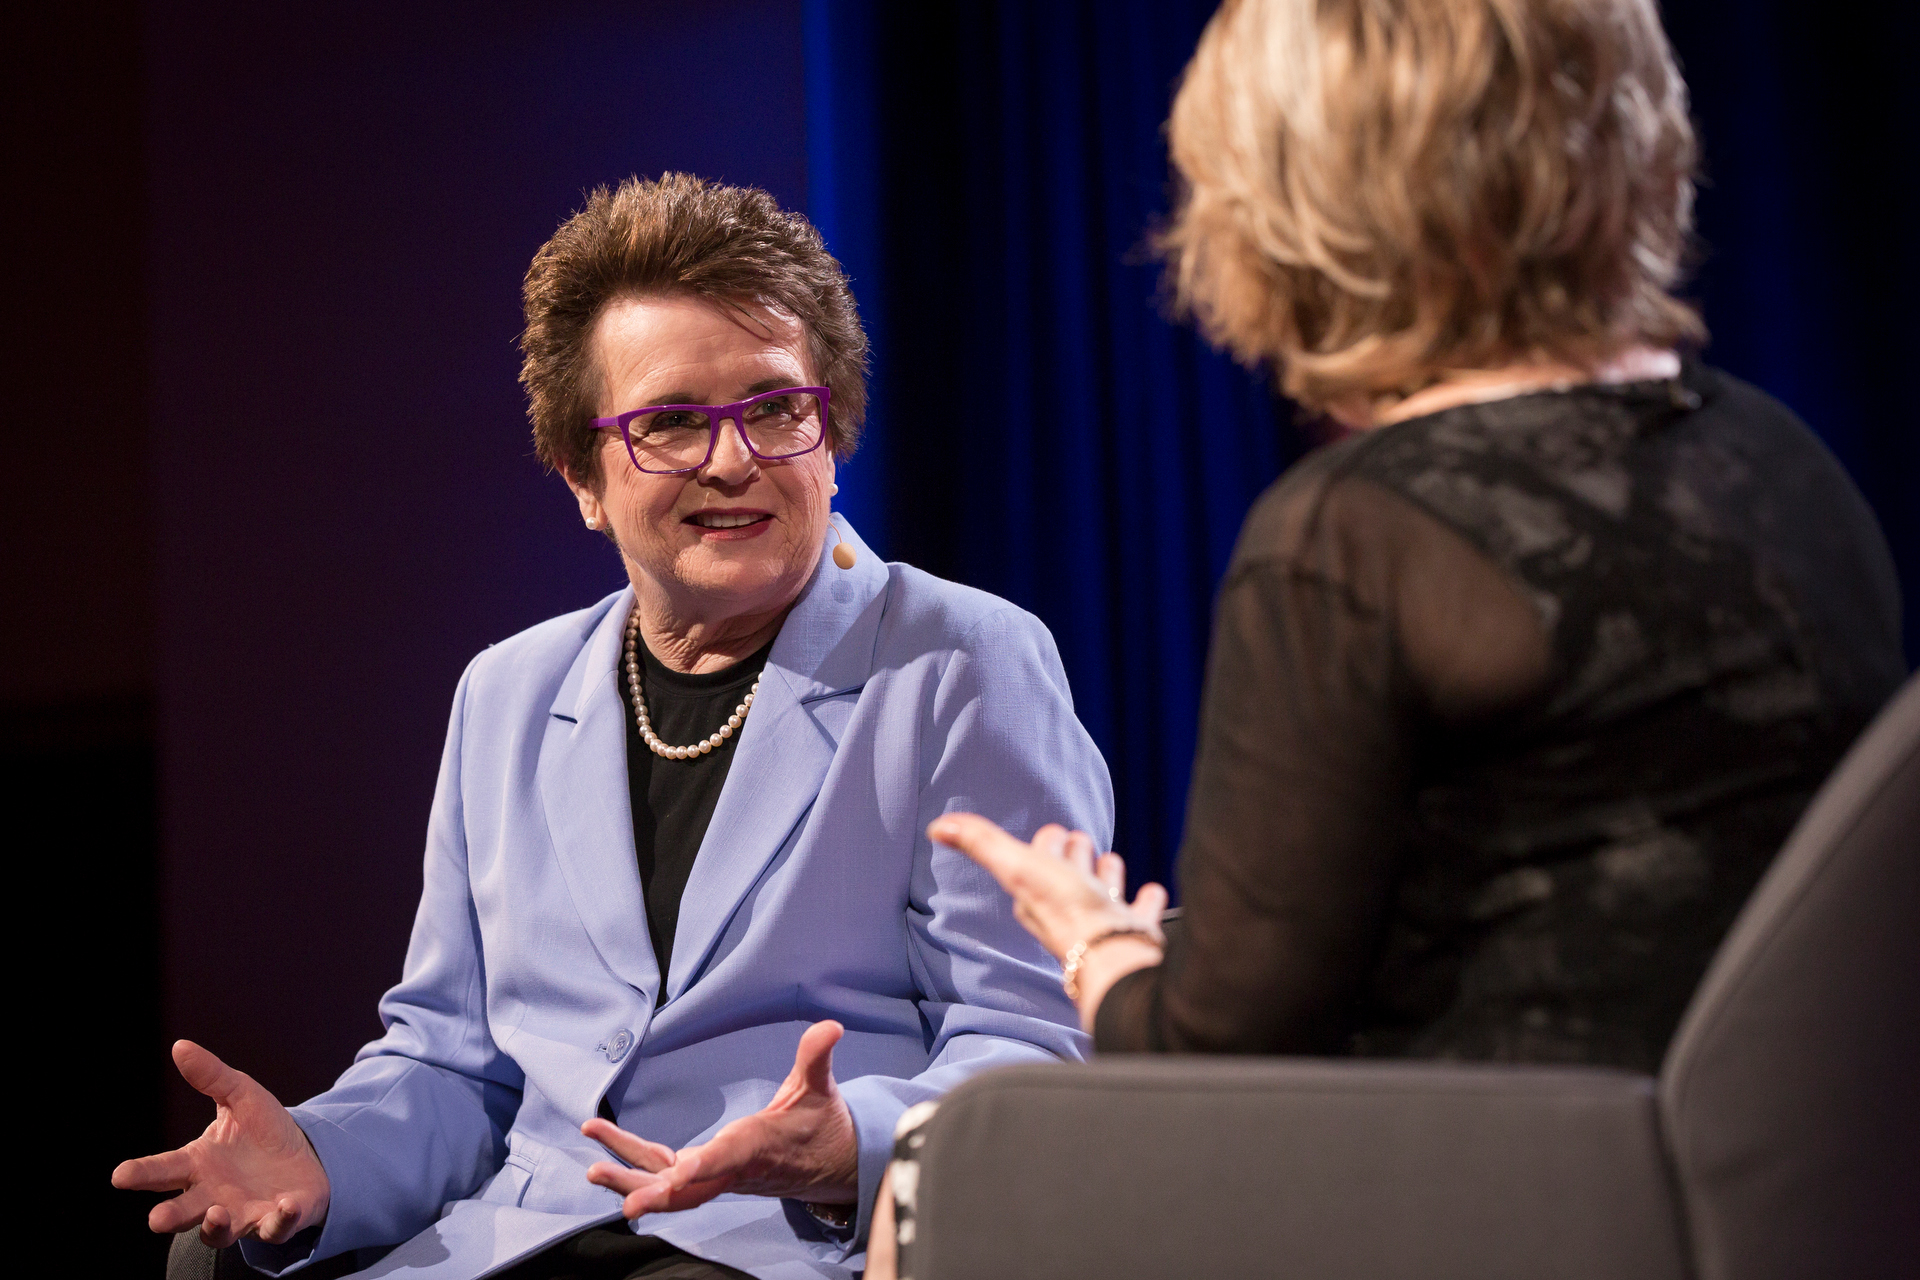 Billie Jean King speaks with host Pat Mitchell at TEDWomen2015 - Momentum, Session 4, May 28, 2015, Monterey Conference Center, Monterey, California, USA. Photo: Marla Aufmuth/TED